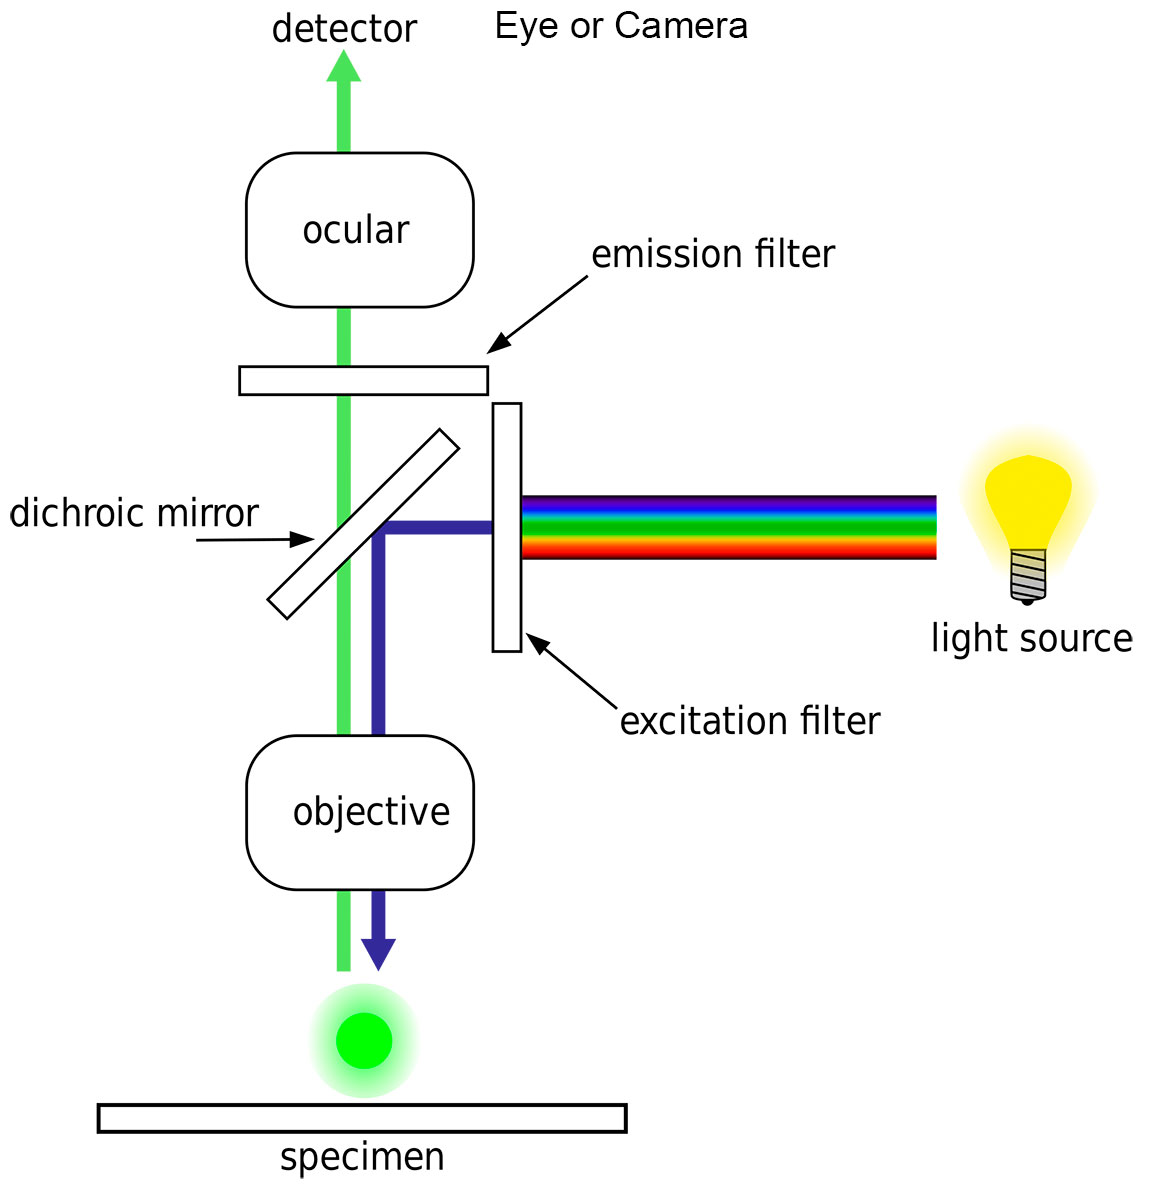 diagram by H. Mühlpfordt Wikipedia showing the basic structure of an Epi-fluorescence light microscope